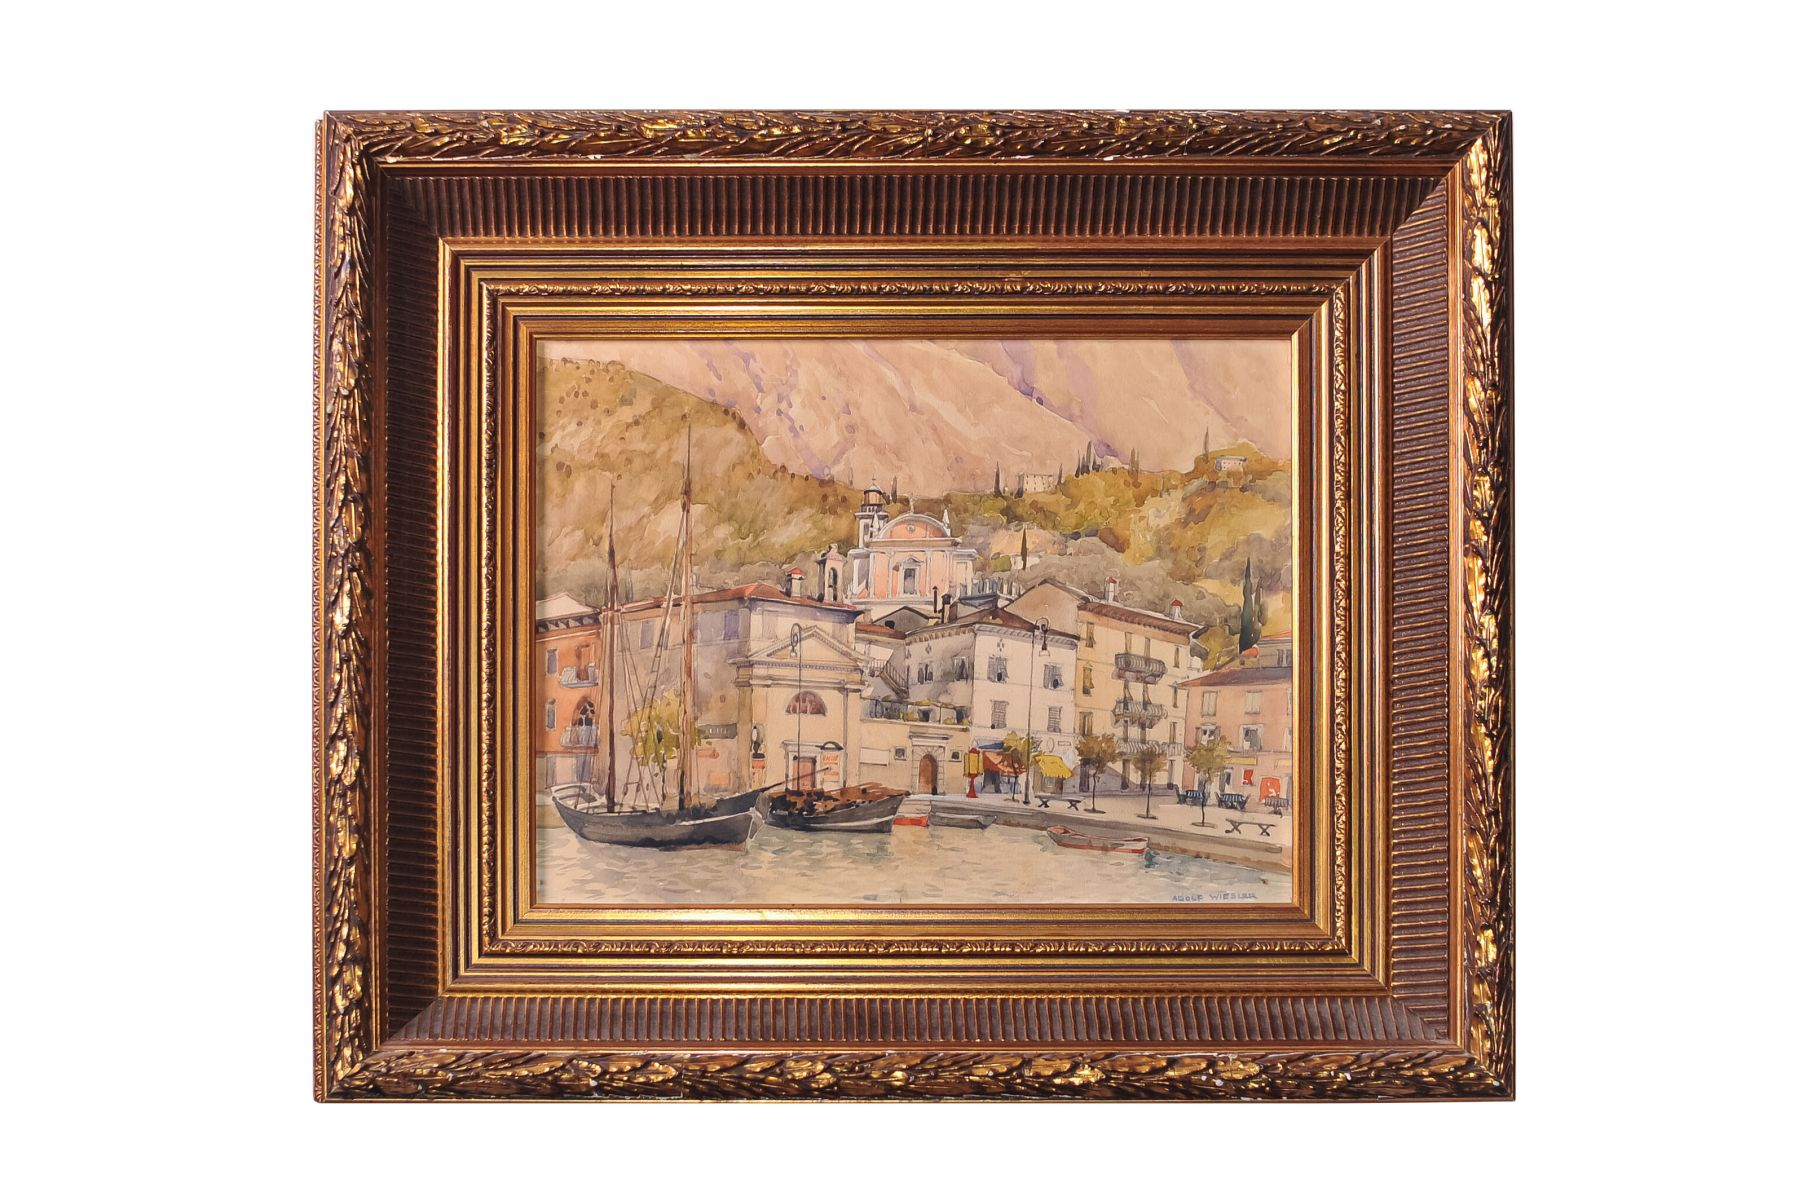 "#101 Adolf Wiesler (1878-1958) ""View of Malcesine on Lake Garda"" 